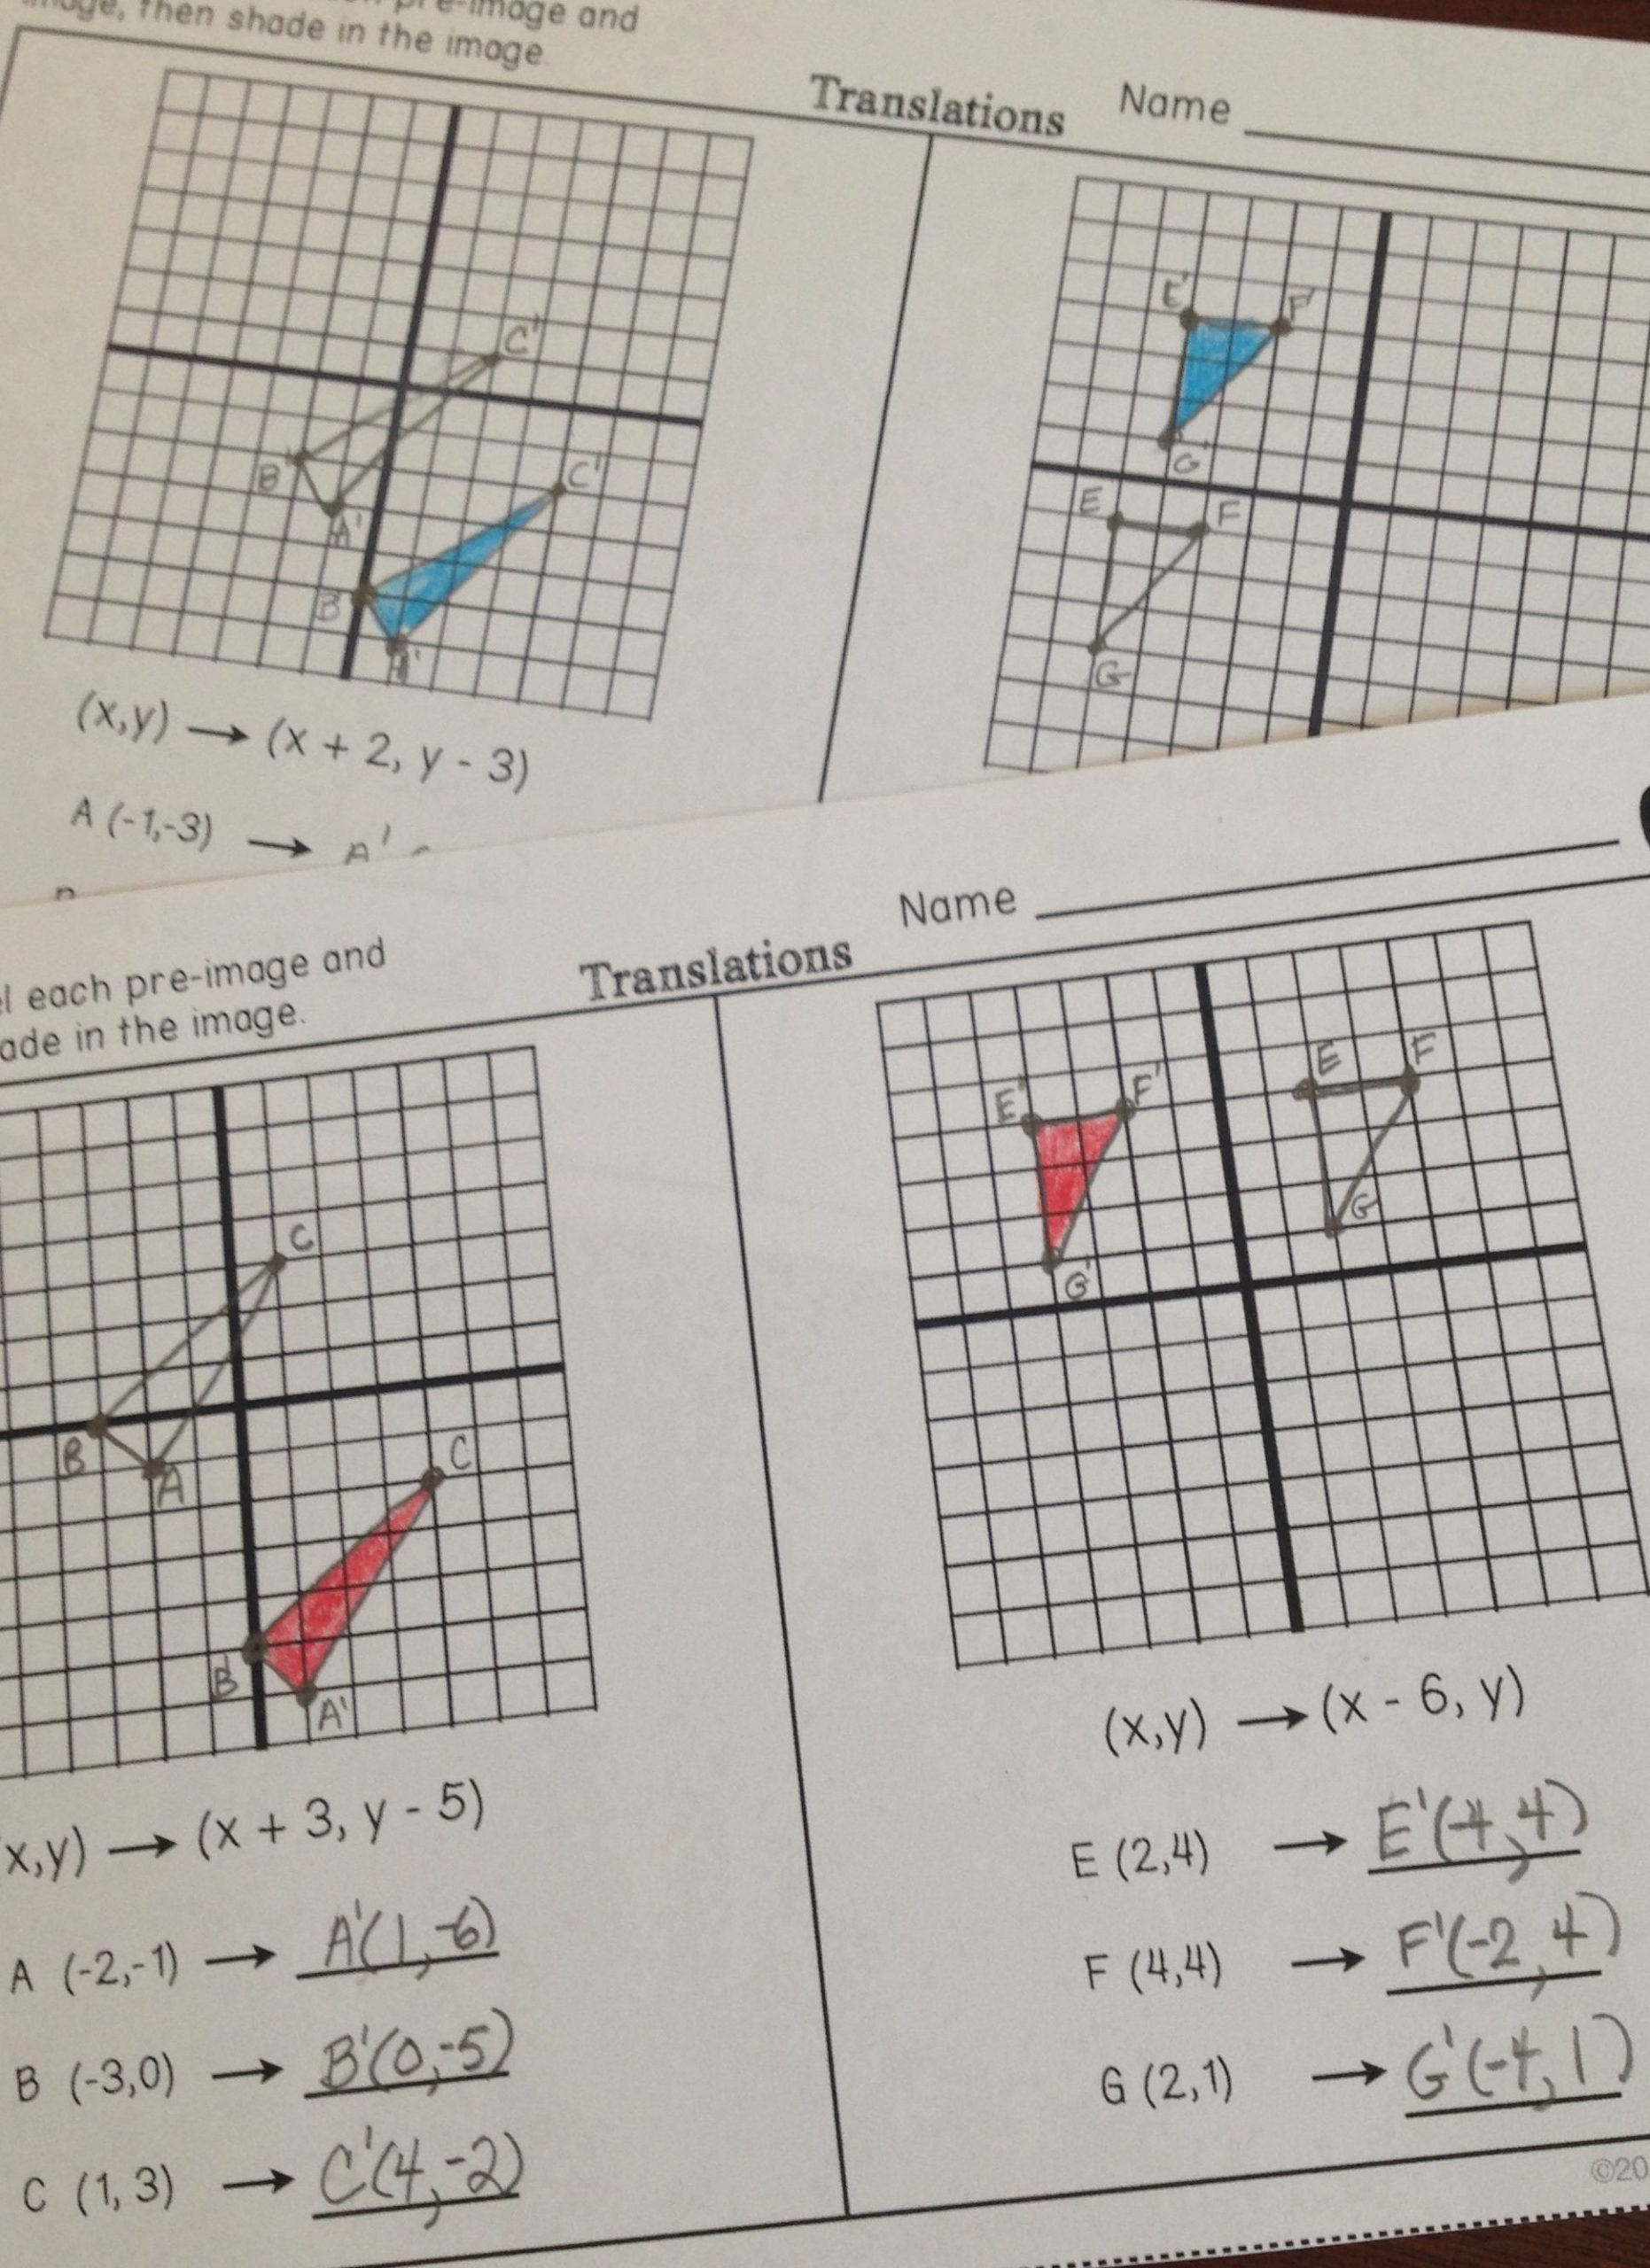 Geometry Transformation Composition Worksheet Answers Transformations Partner Practice Worksheets